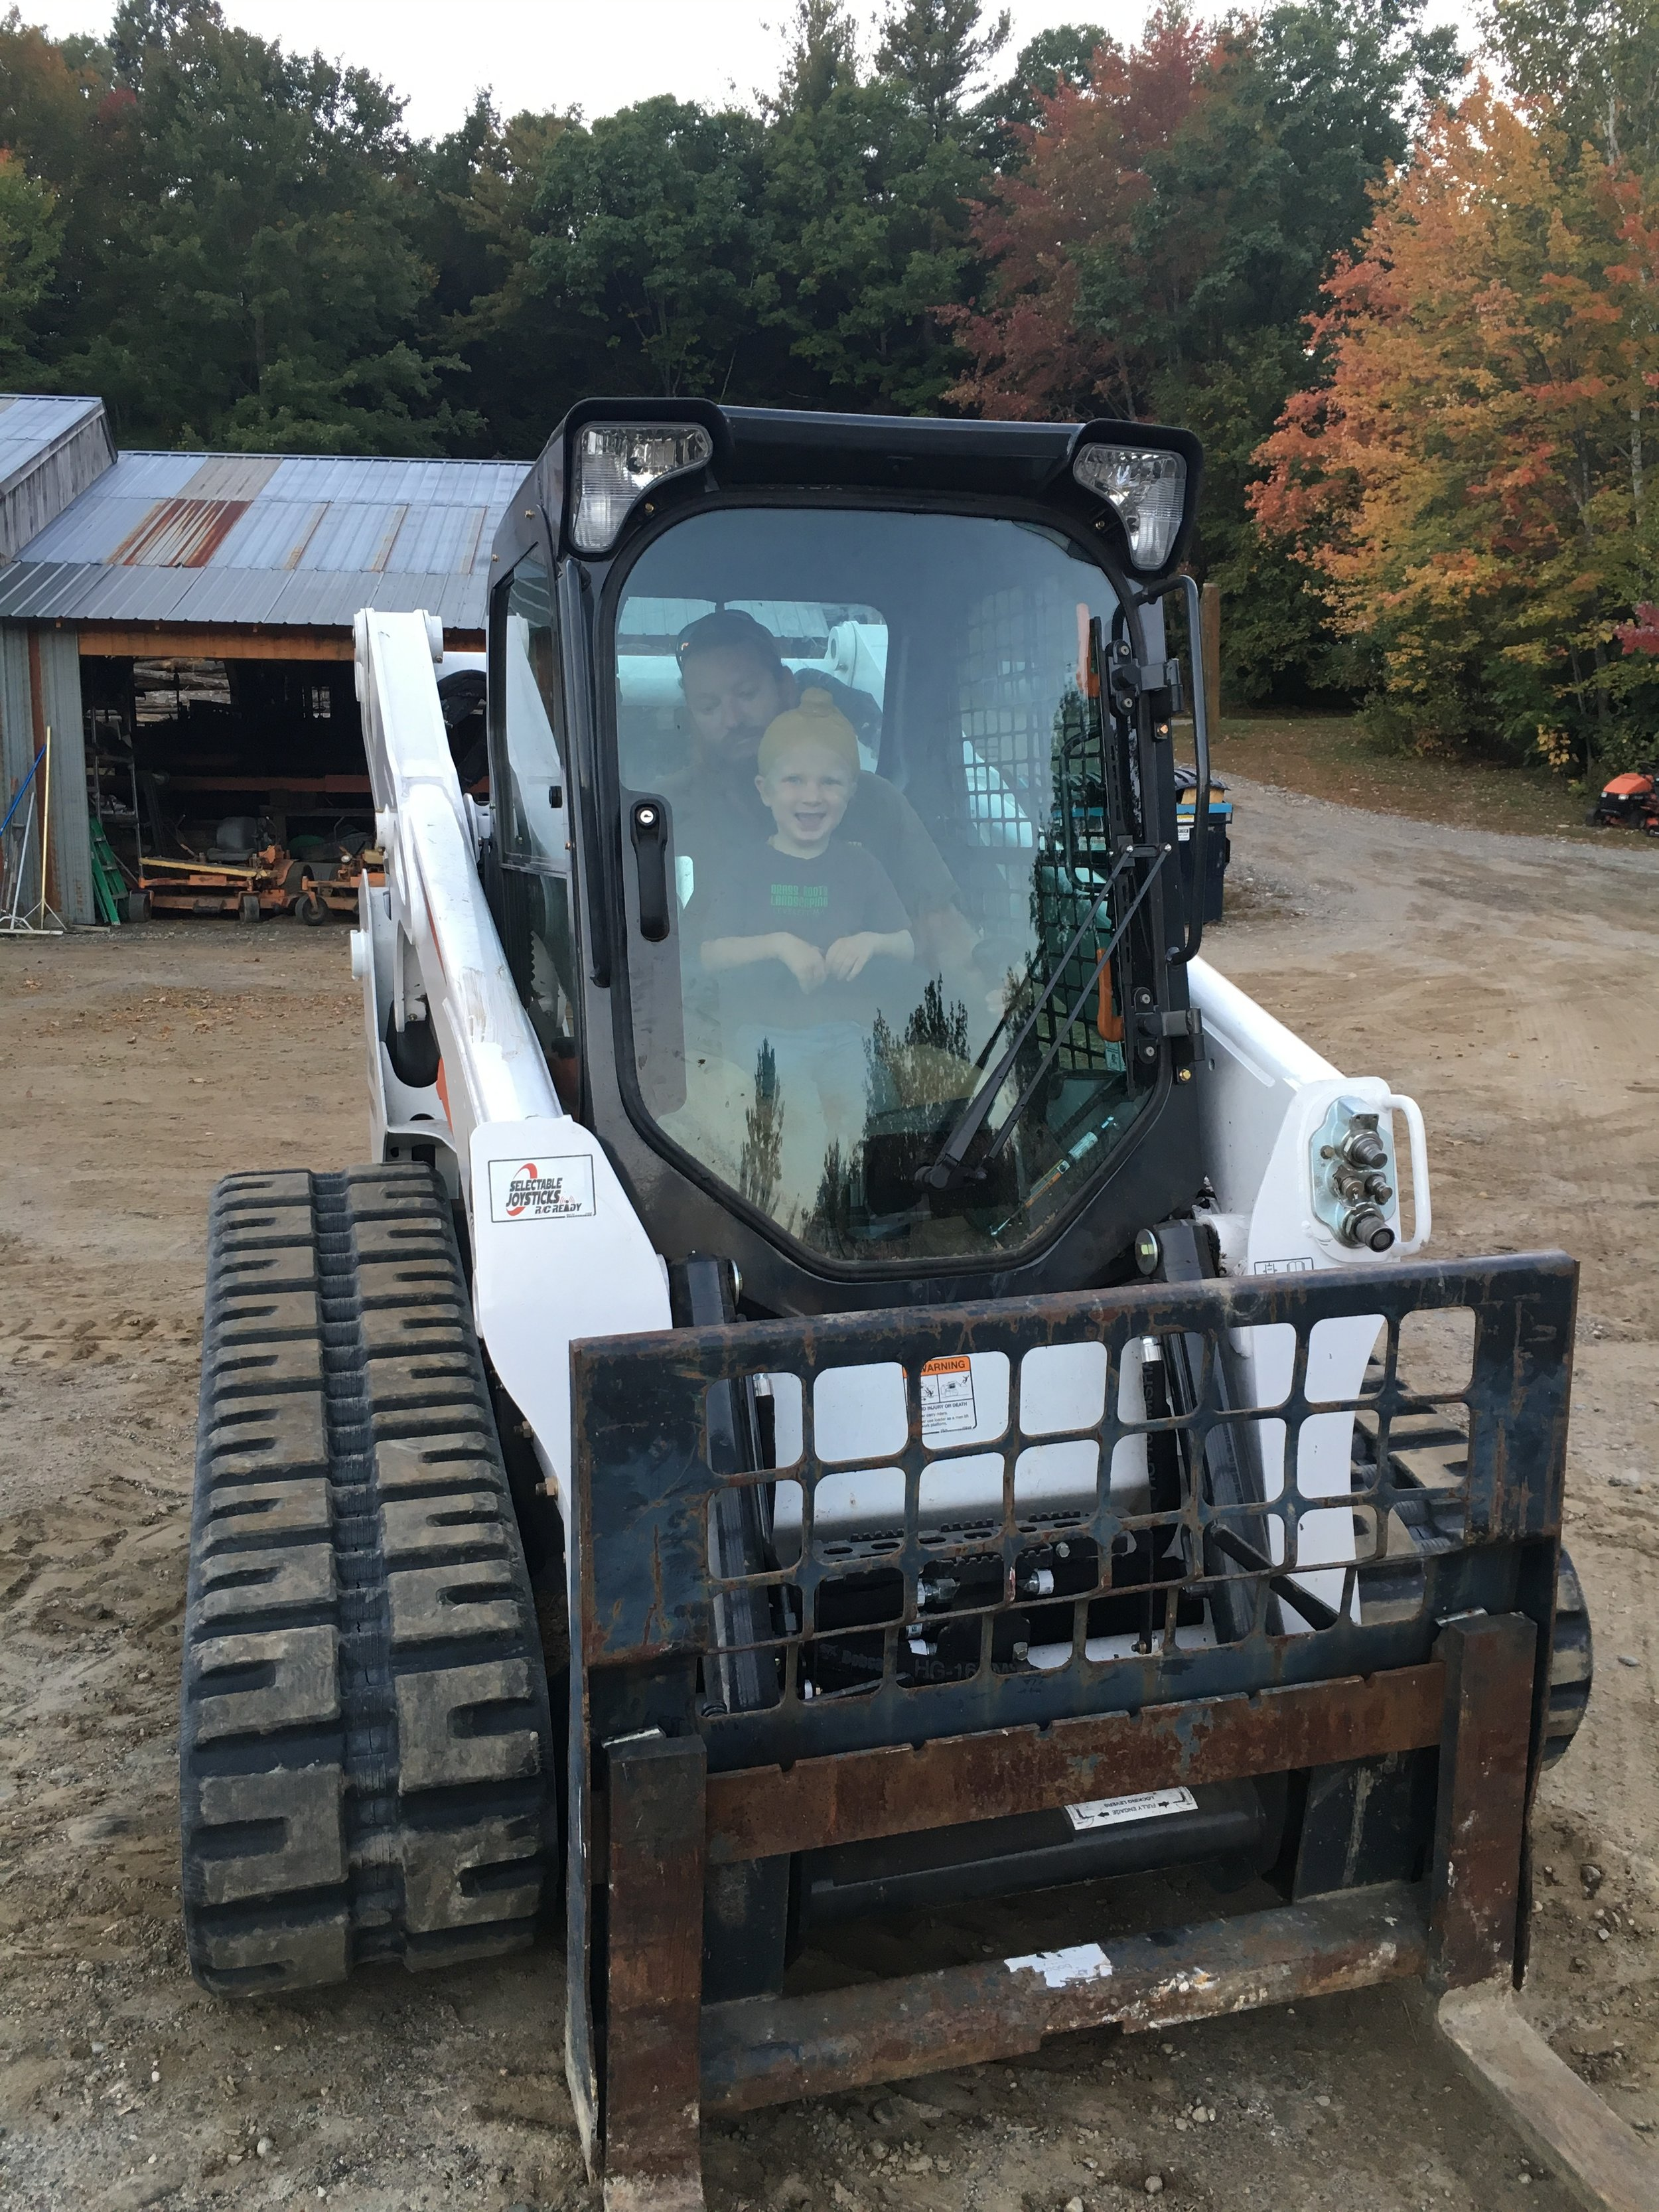 skid steer in work yard